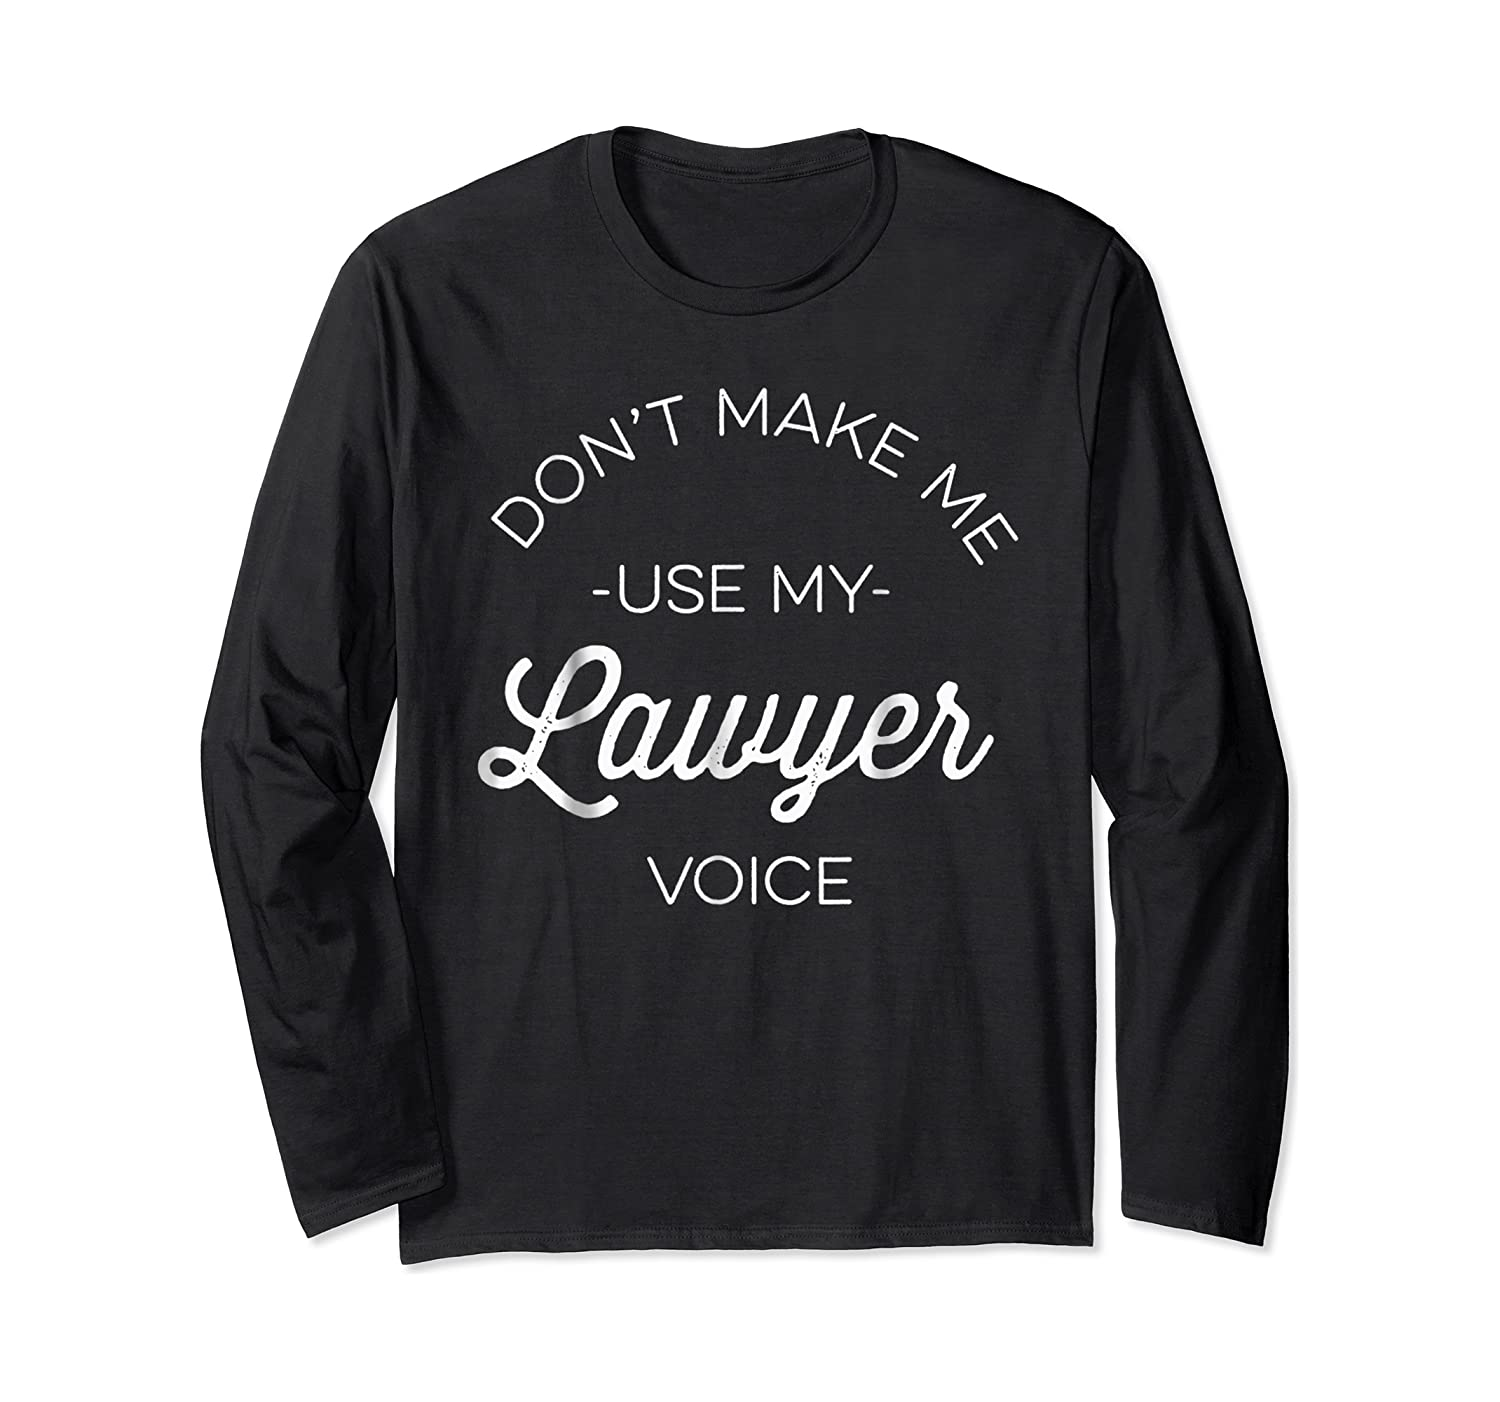 Funny Lawyer Shirt - Don't Make Me Use My Lawyer Voice Long Sleeve T-shirt